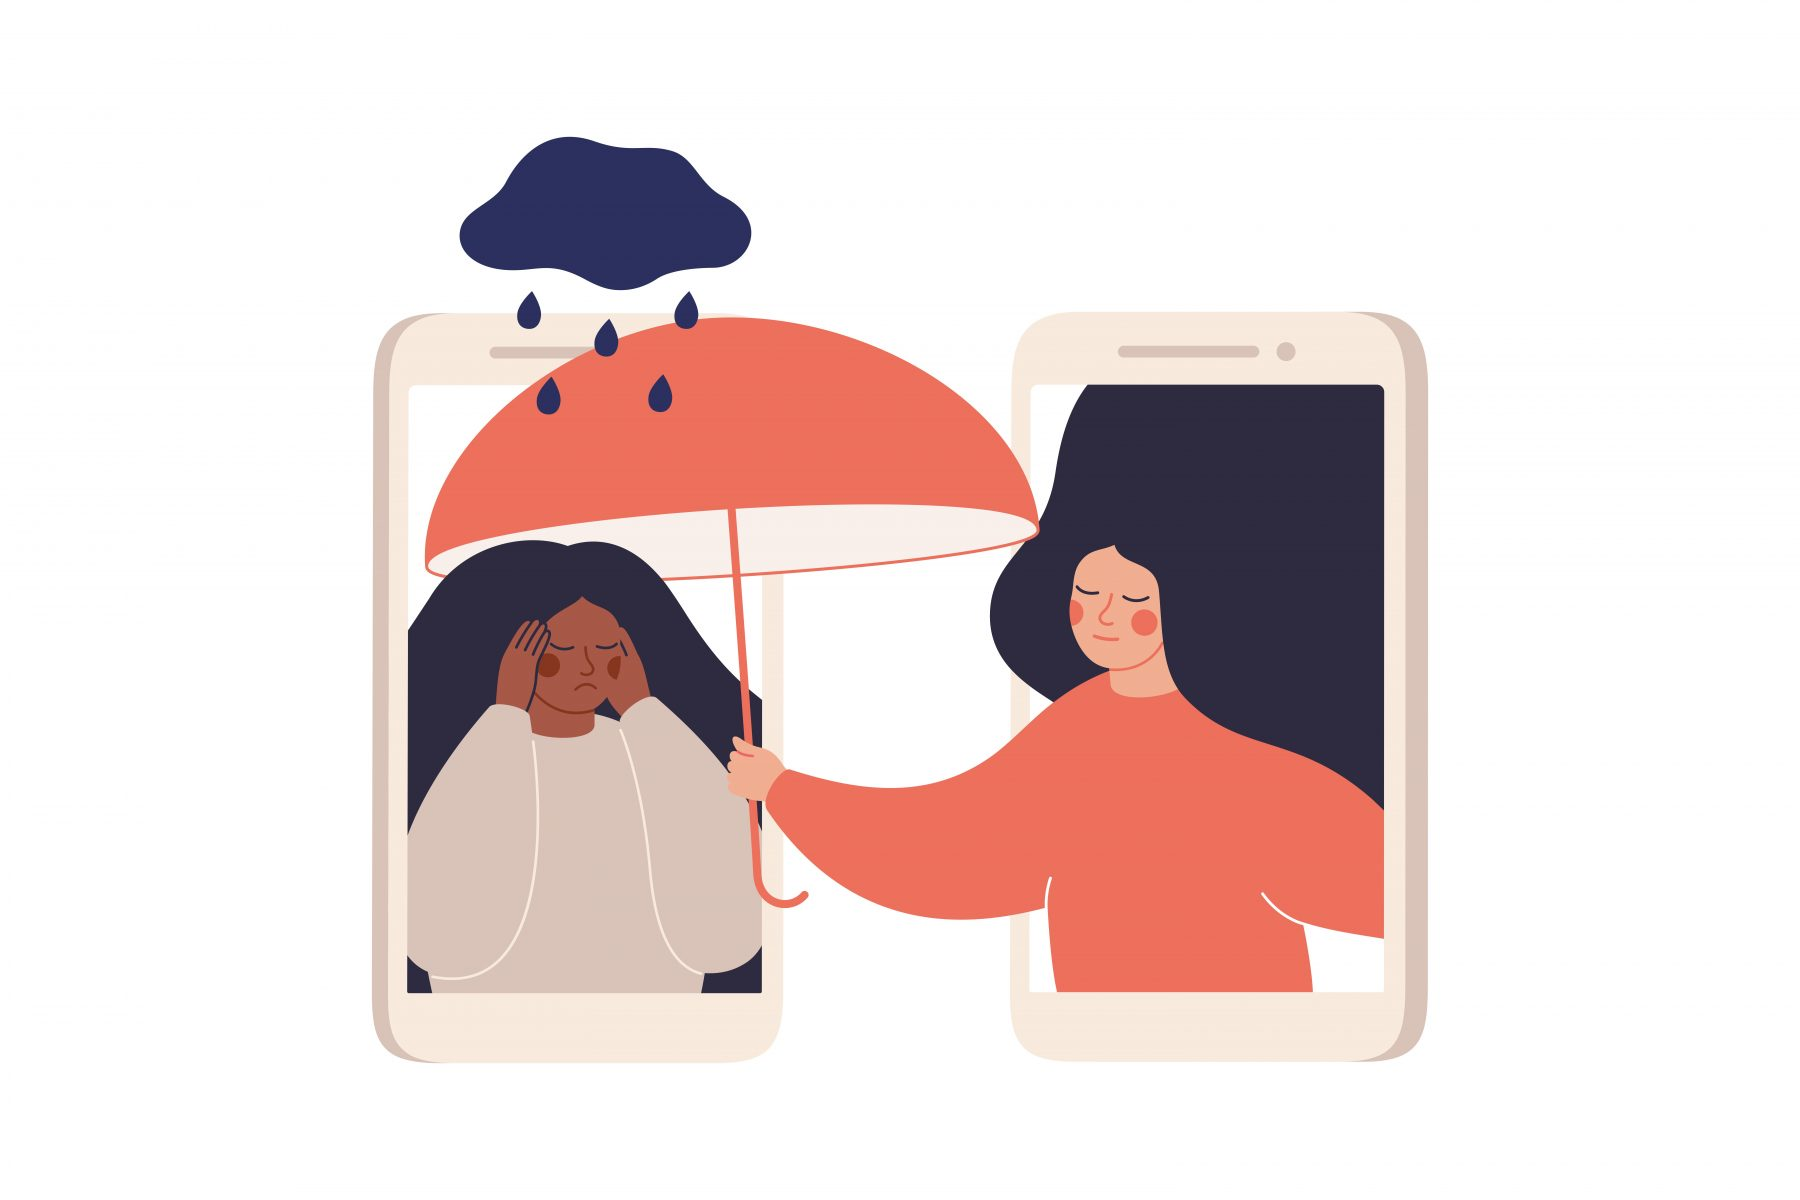 How to Develop Empathy for Others on Transit